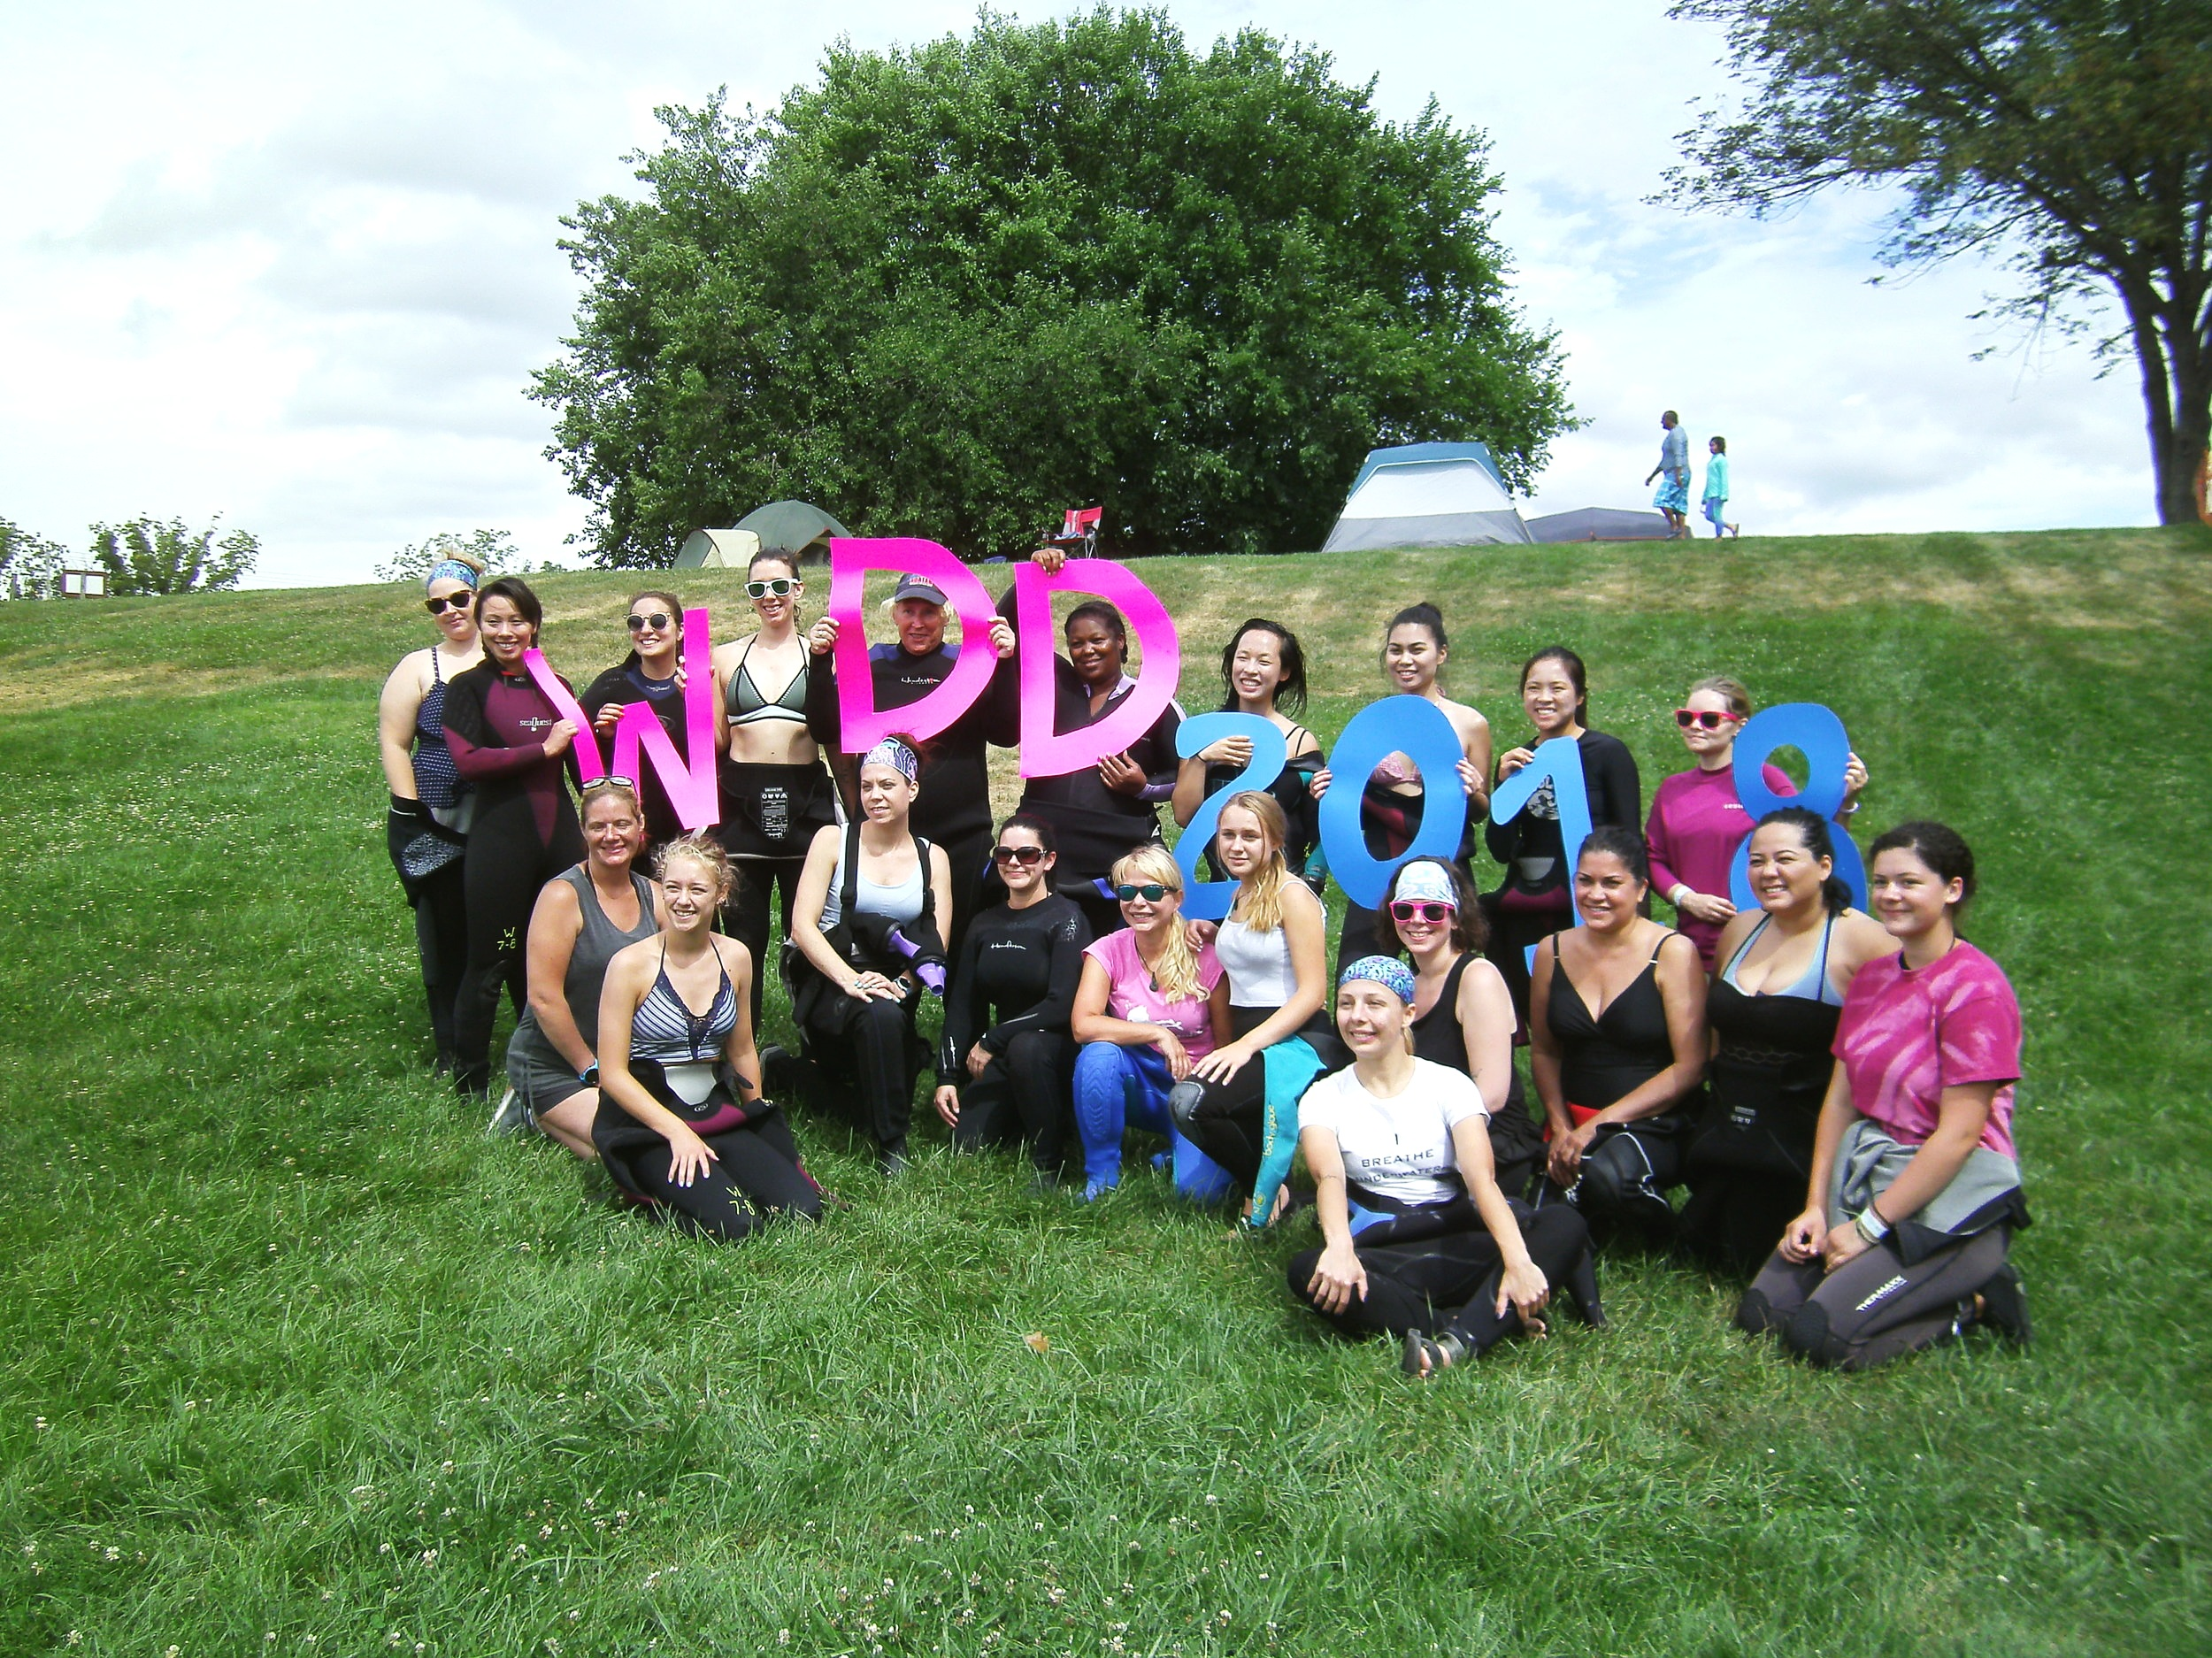 July 20th is International Women's Dive Day at Dutch Springs, PA